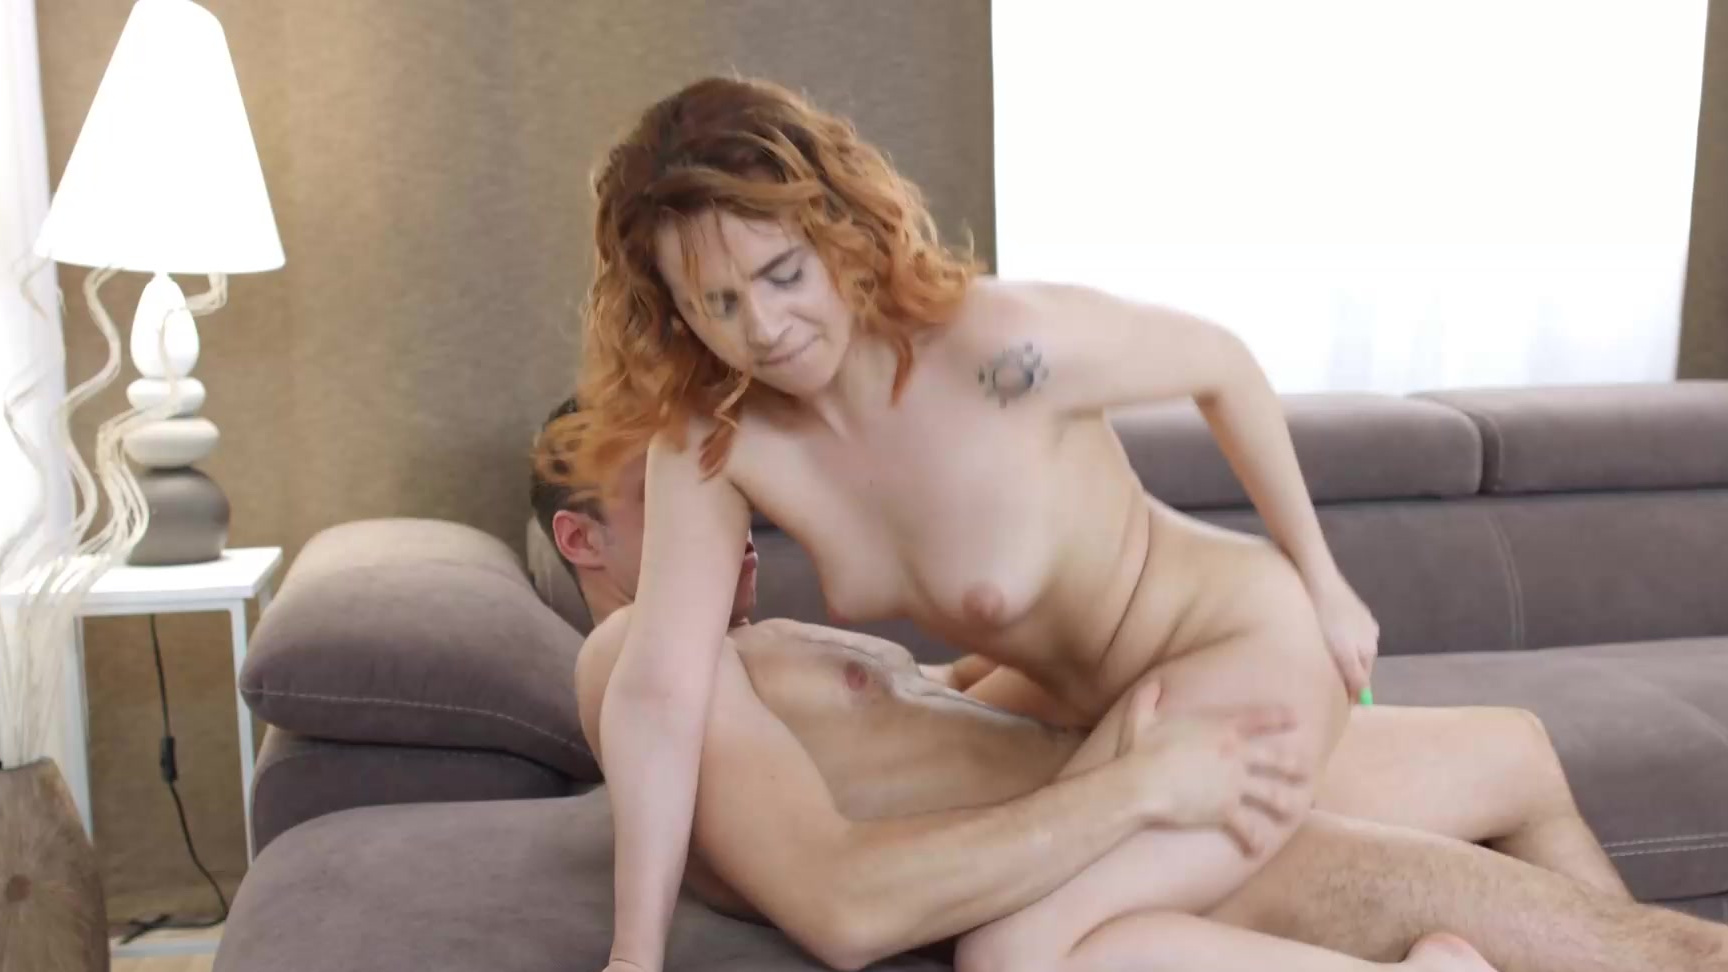 believe, ryan gets penetrated byhard cocks of her boyfriend remarkable, very